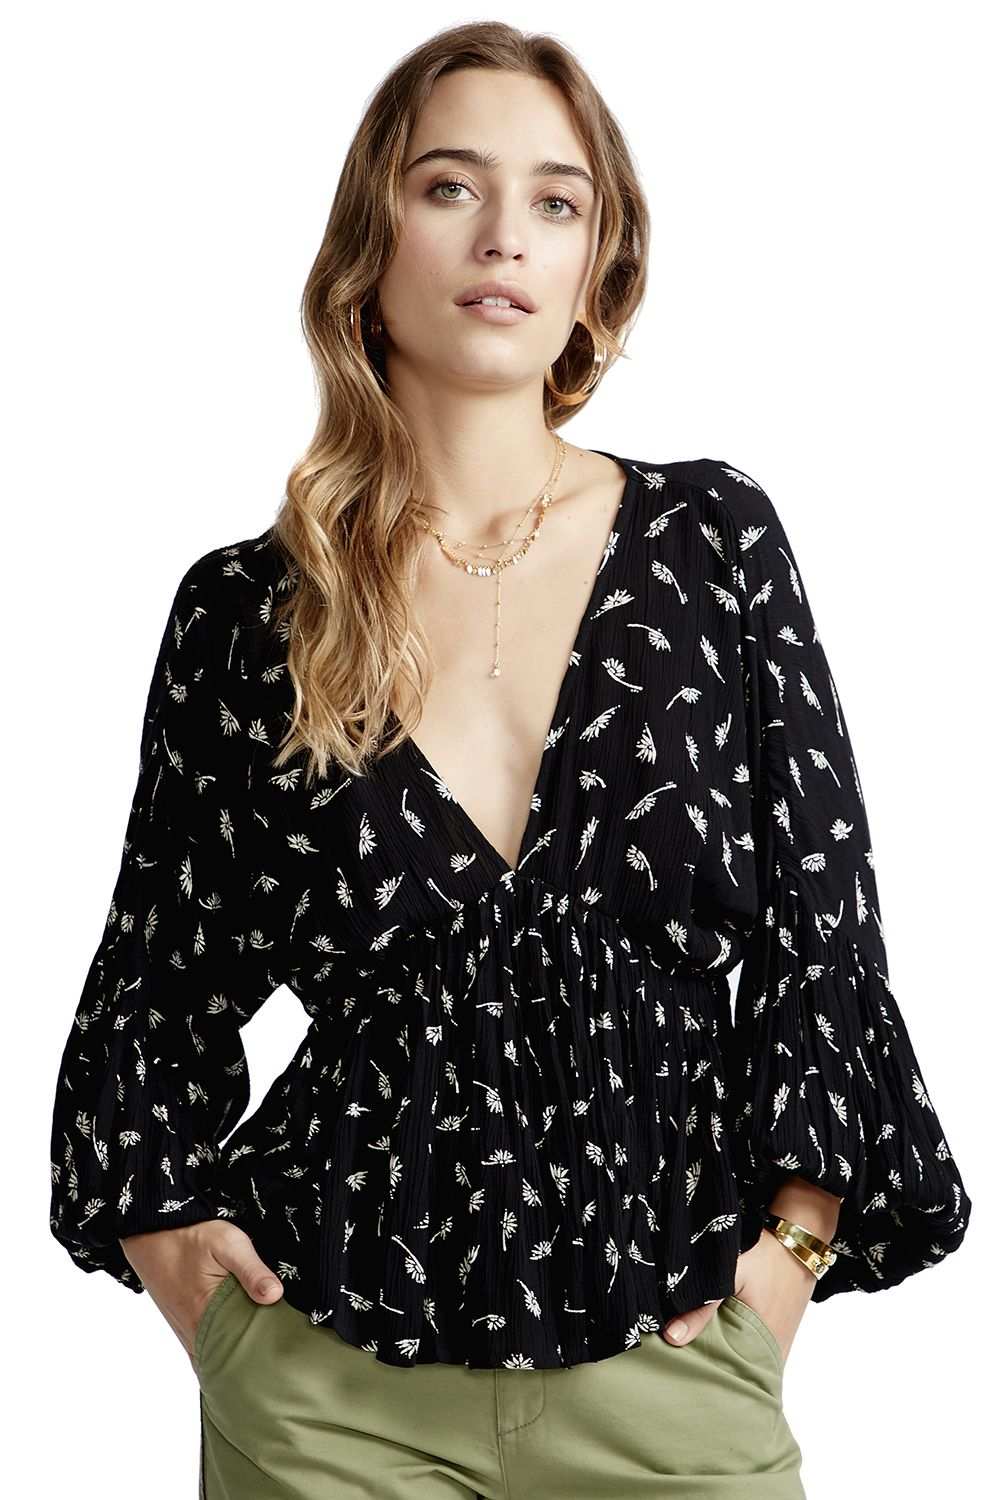 Billabong Top WISPERING THOUGHTS Black